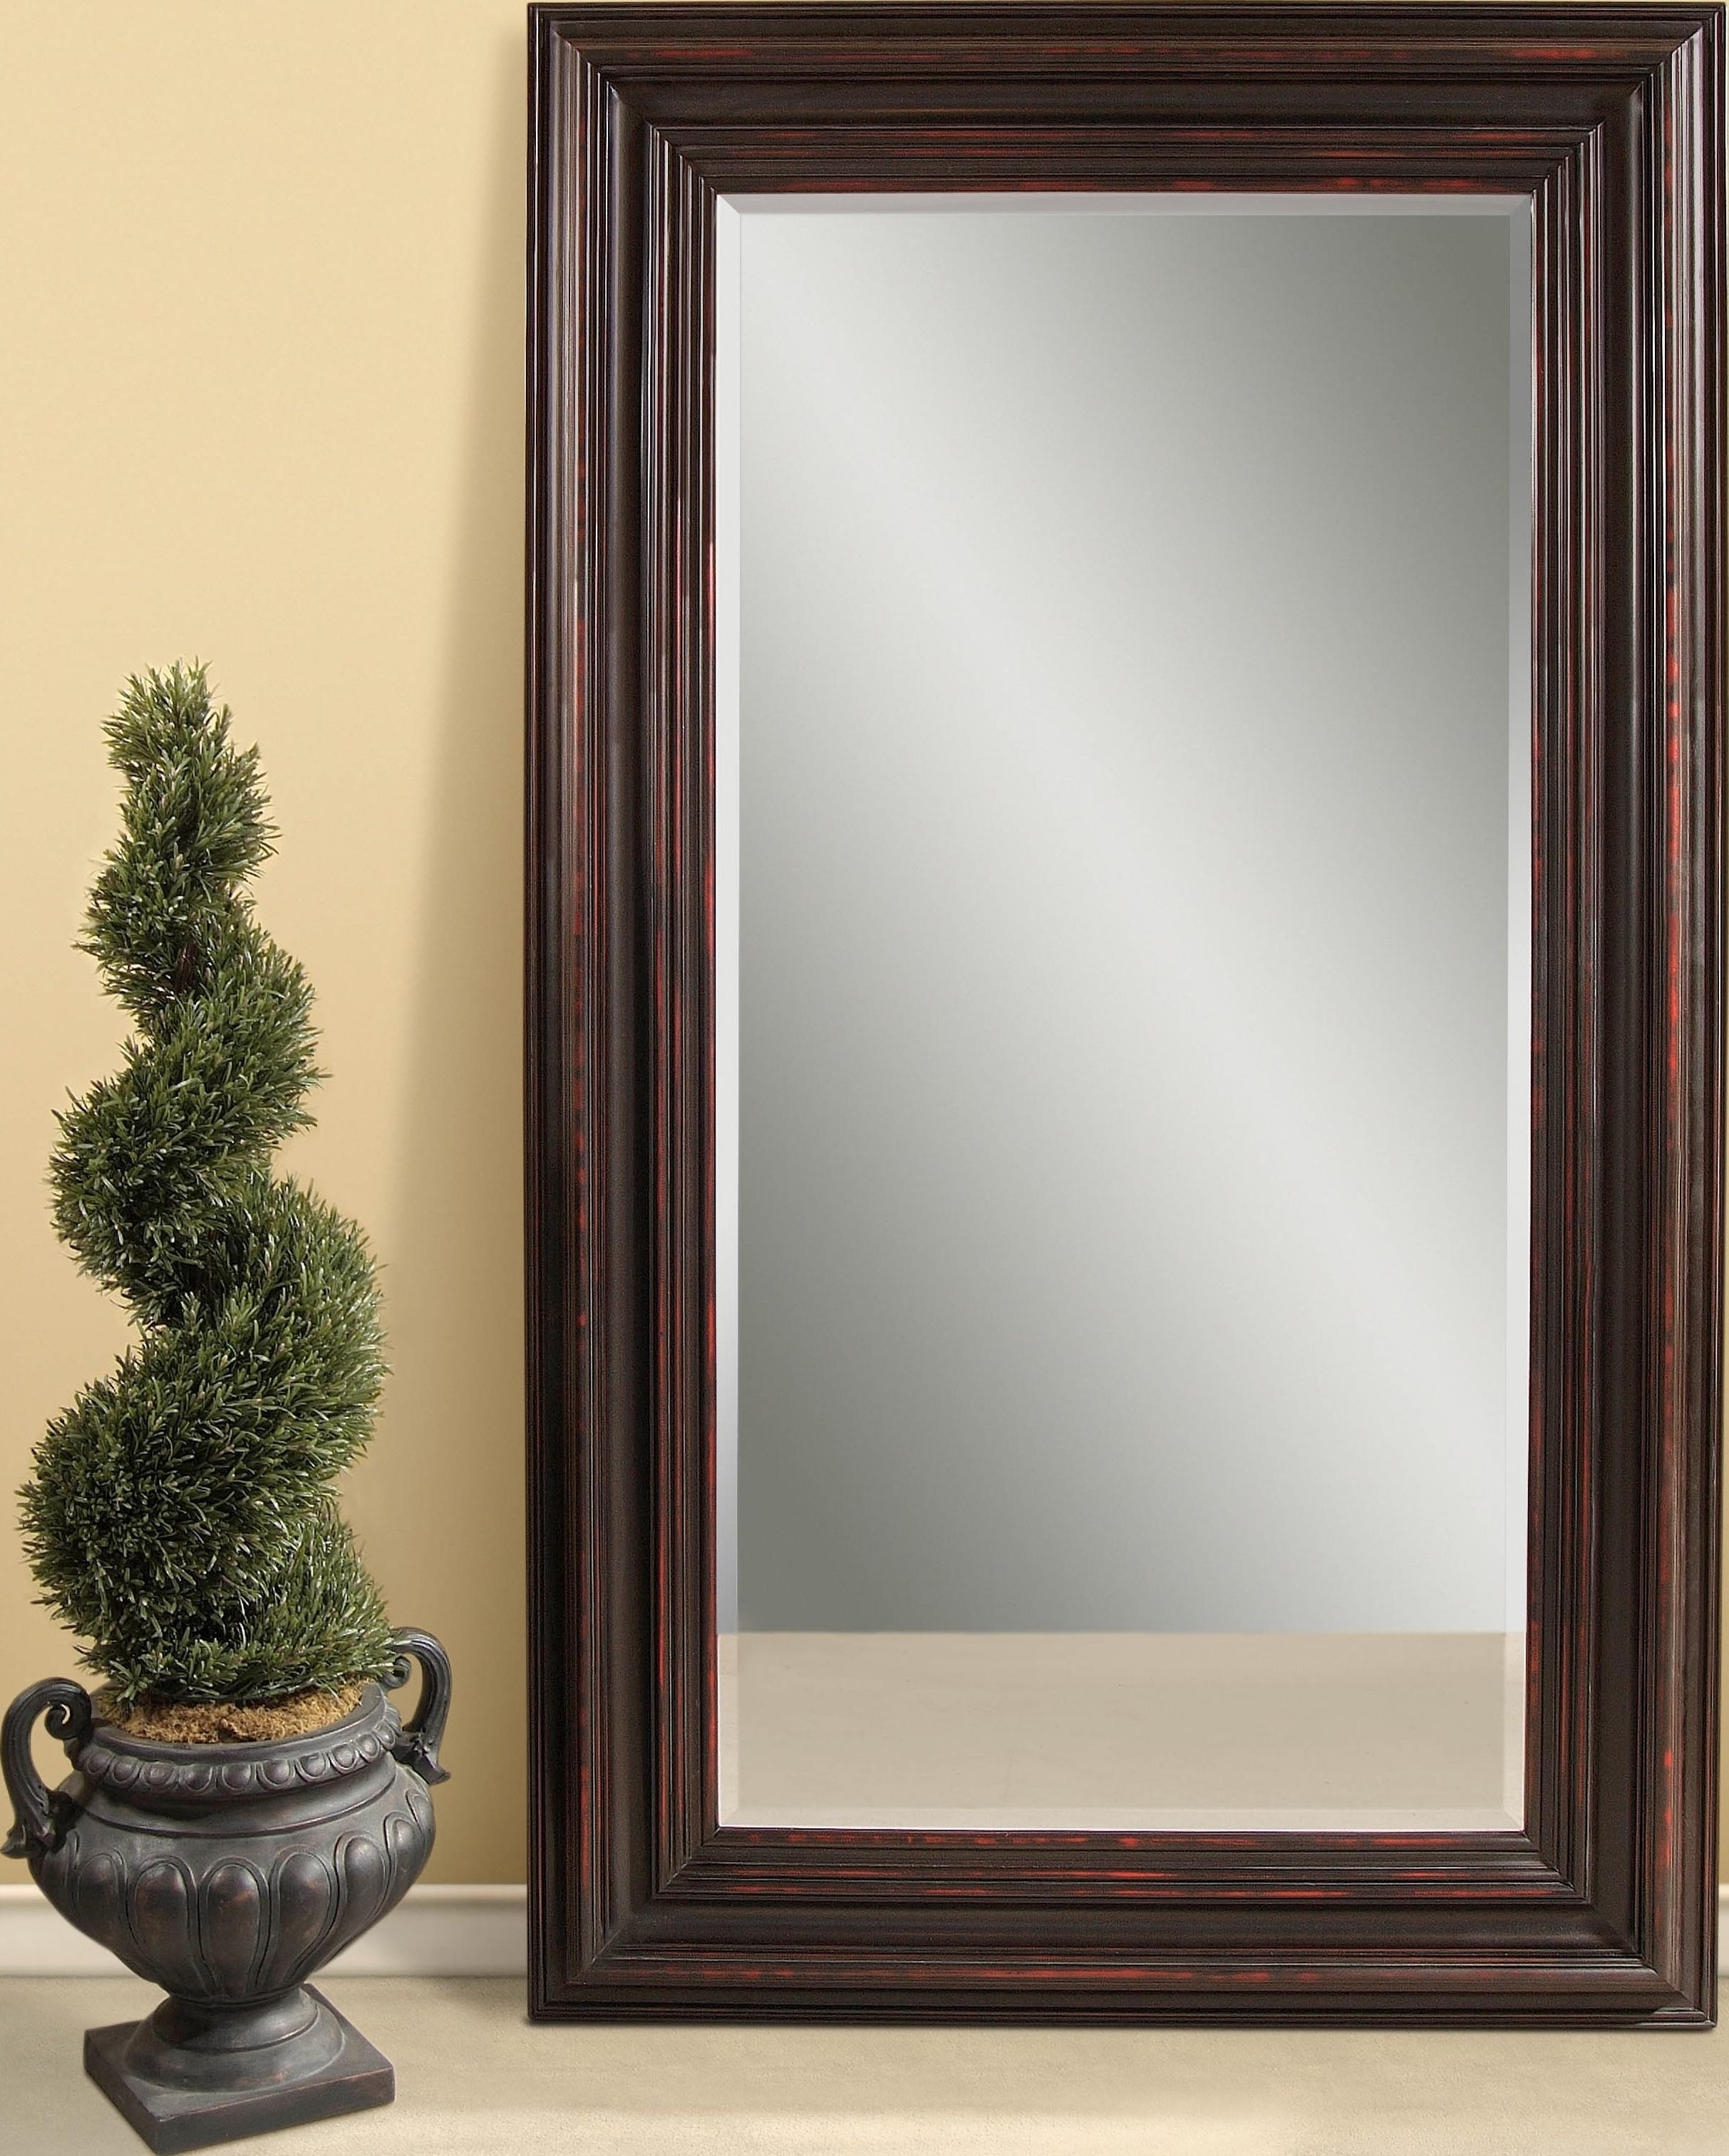 Plain Decoration Large Wall Mirrors Cheap Splendid Design Inside Black Wall Mirrors For Sale (Image 16 of 20)